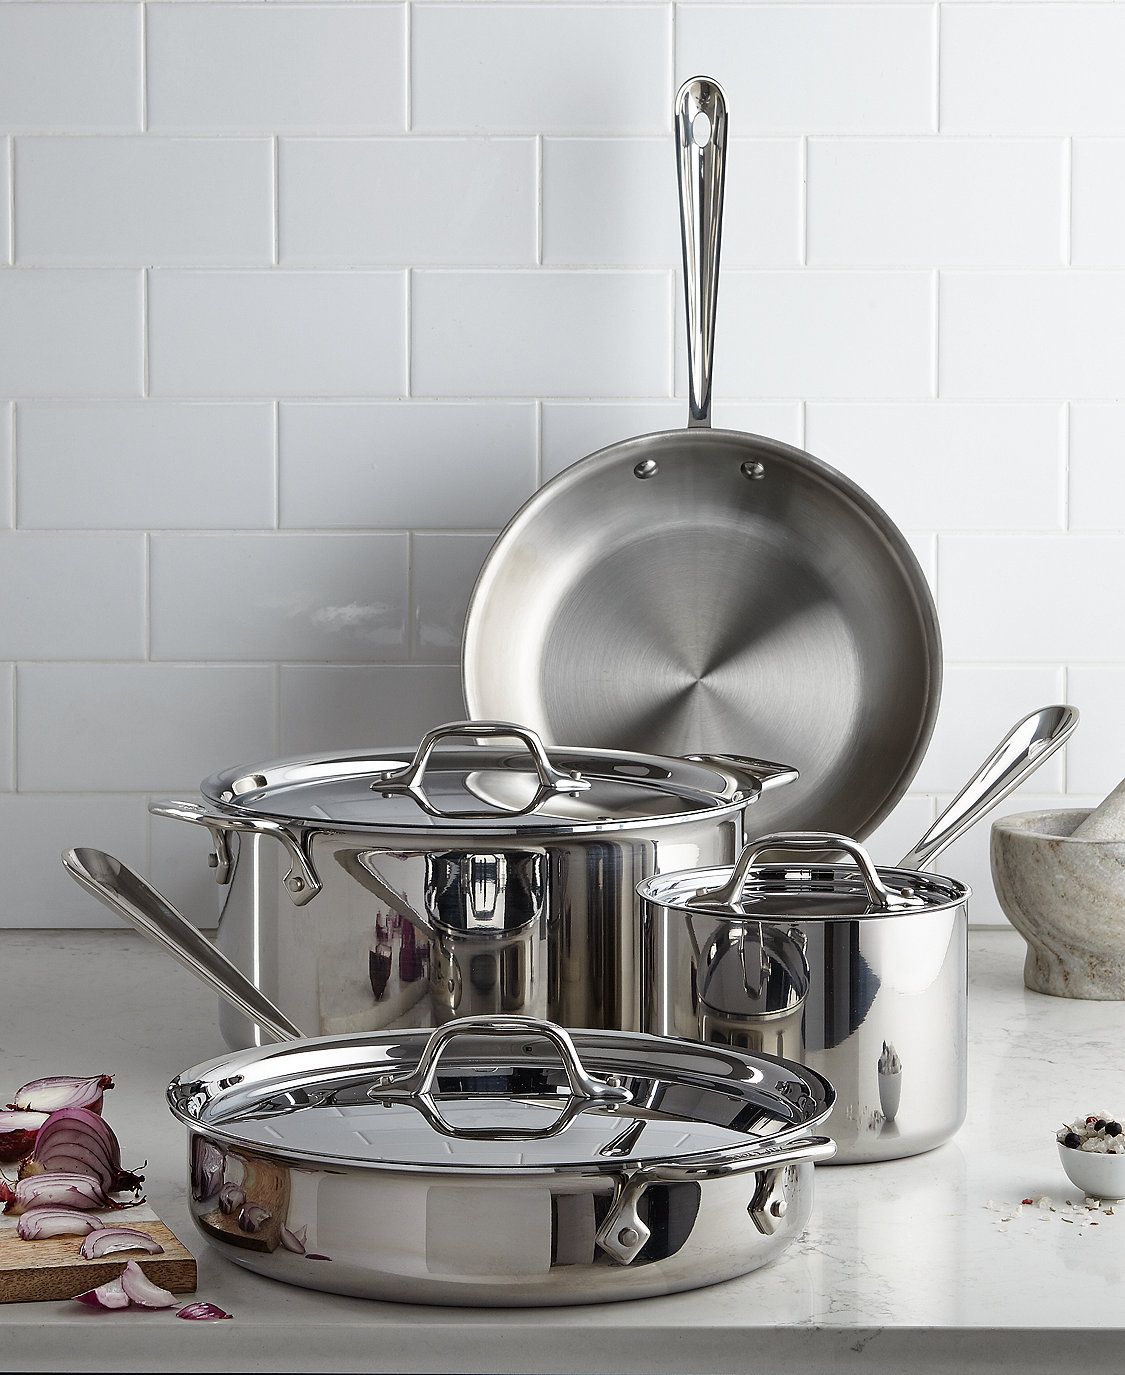 All Clad Stainless Steel 7 Pc Cookware Set Created For Macy S Reviews Cookware Sets Macy S In 2021 Cookware Set Cookware Set Stainless Steel Stainless Steel Cookware All clad 7 piece set